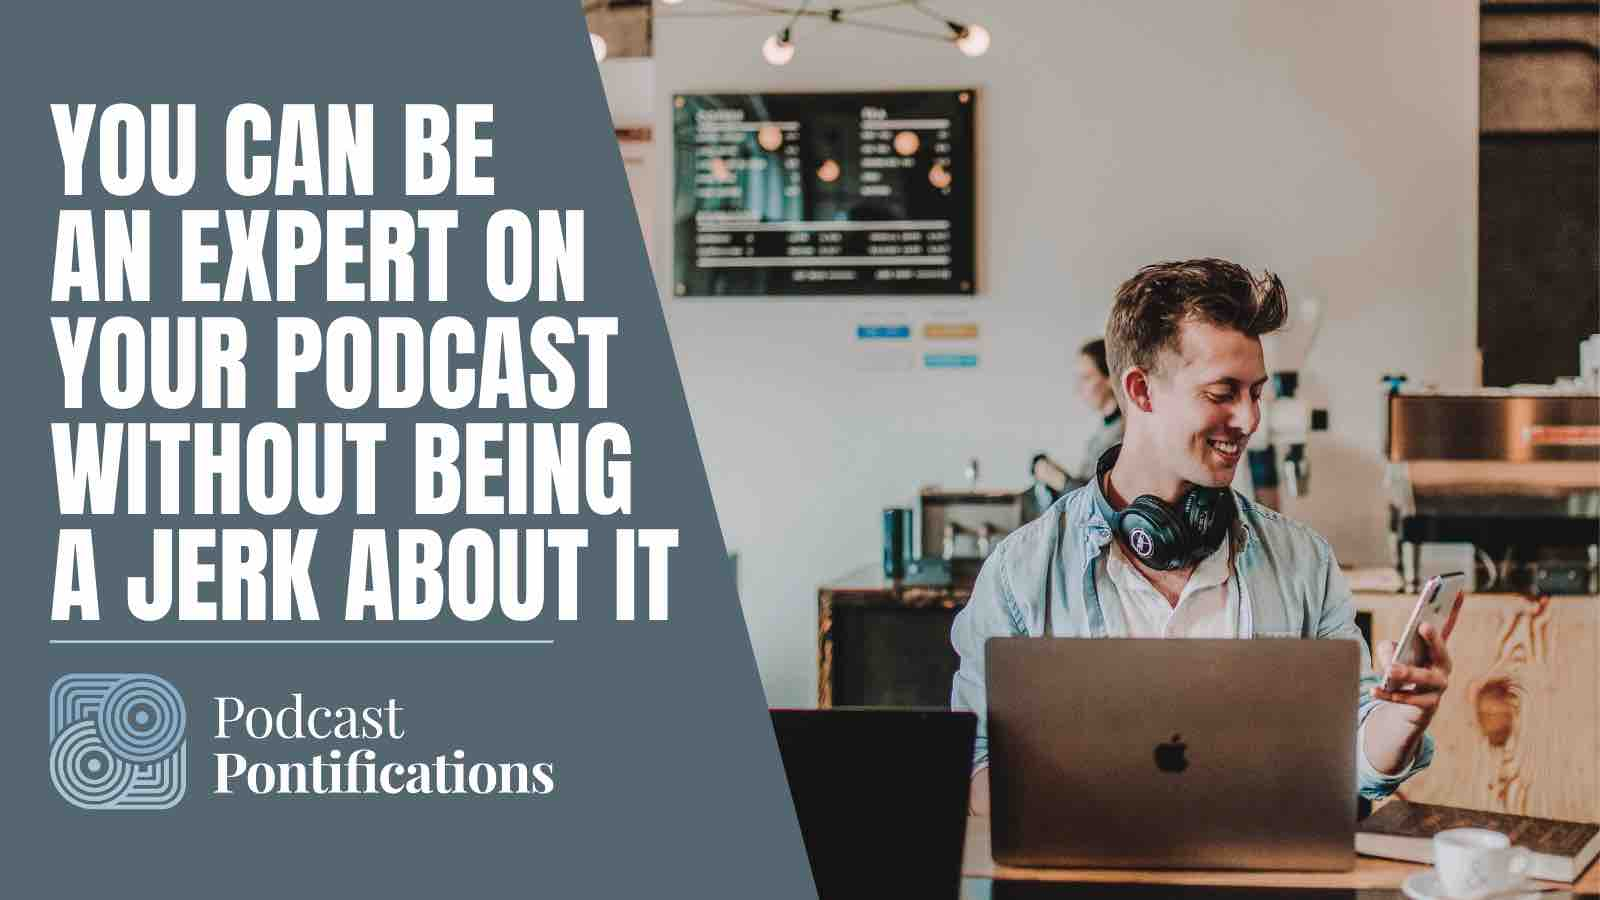 You Can Be An Expert On Your Podcast Without Being A Jerk About It